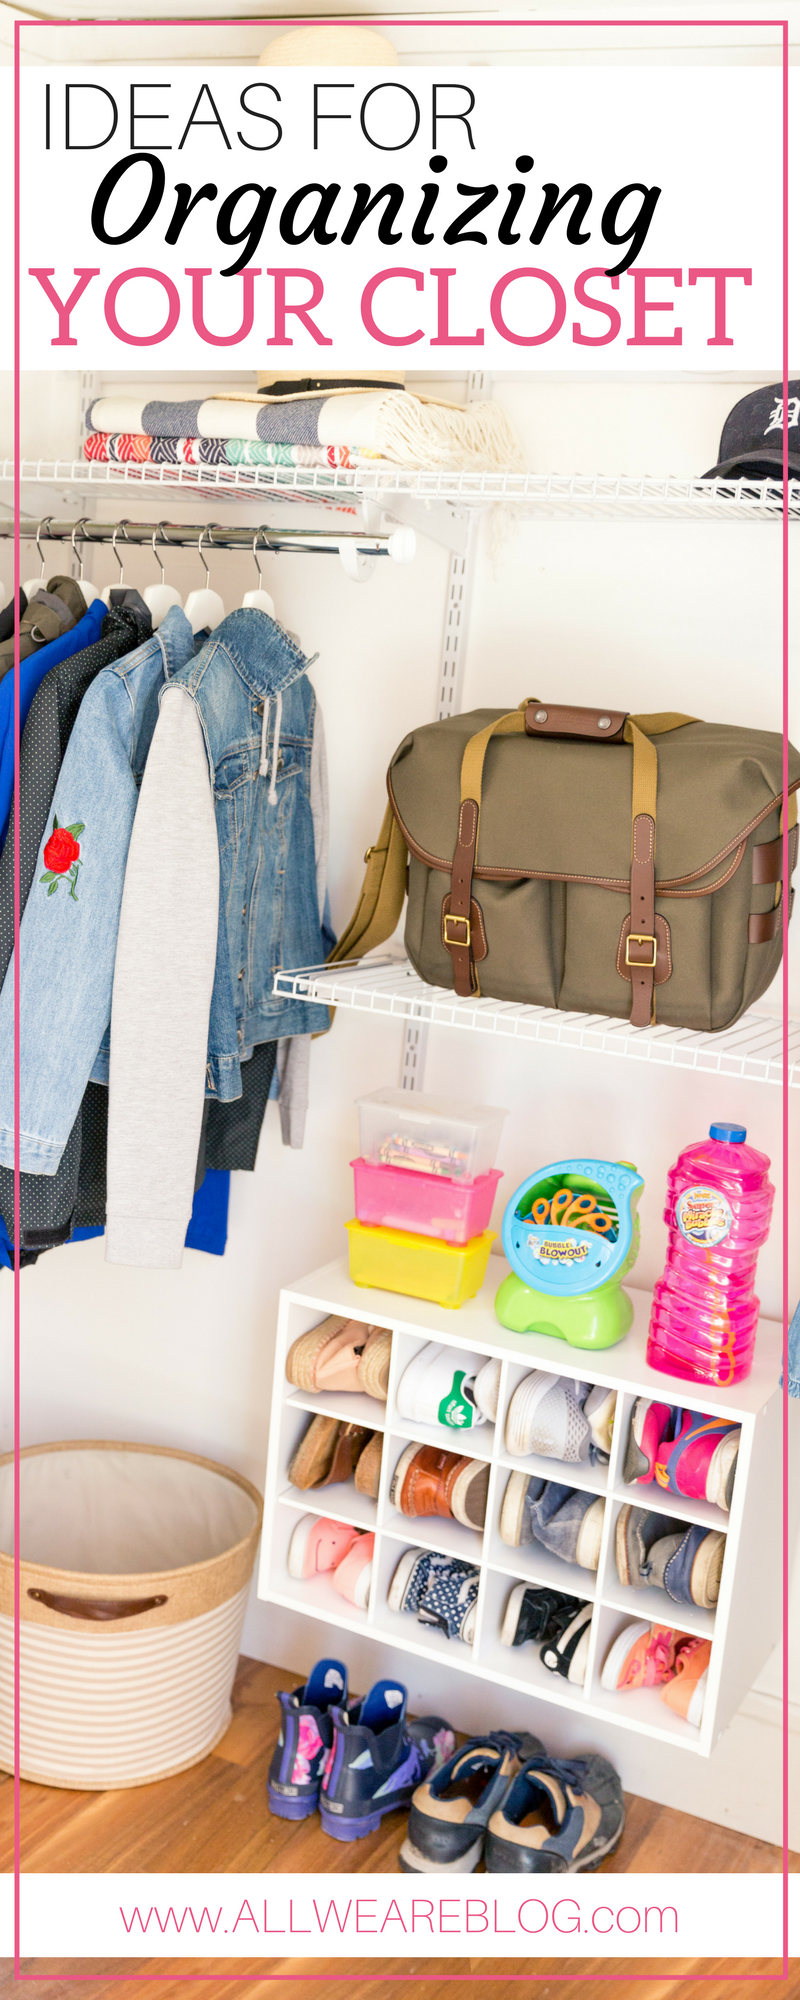 ideas for organizing your closet